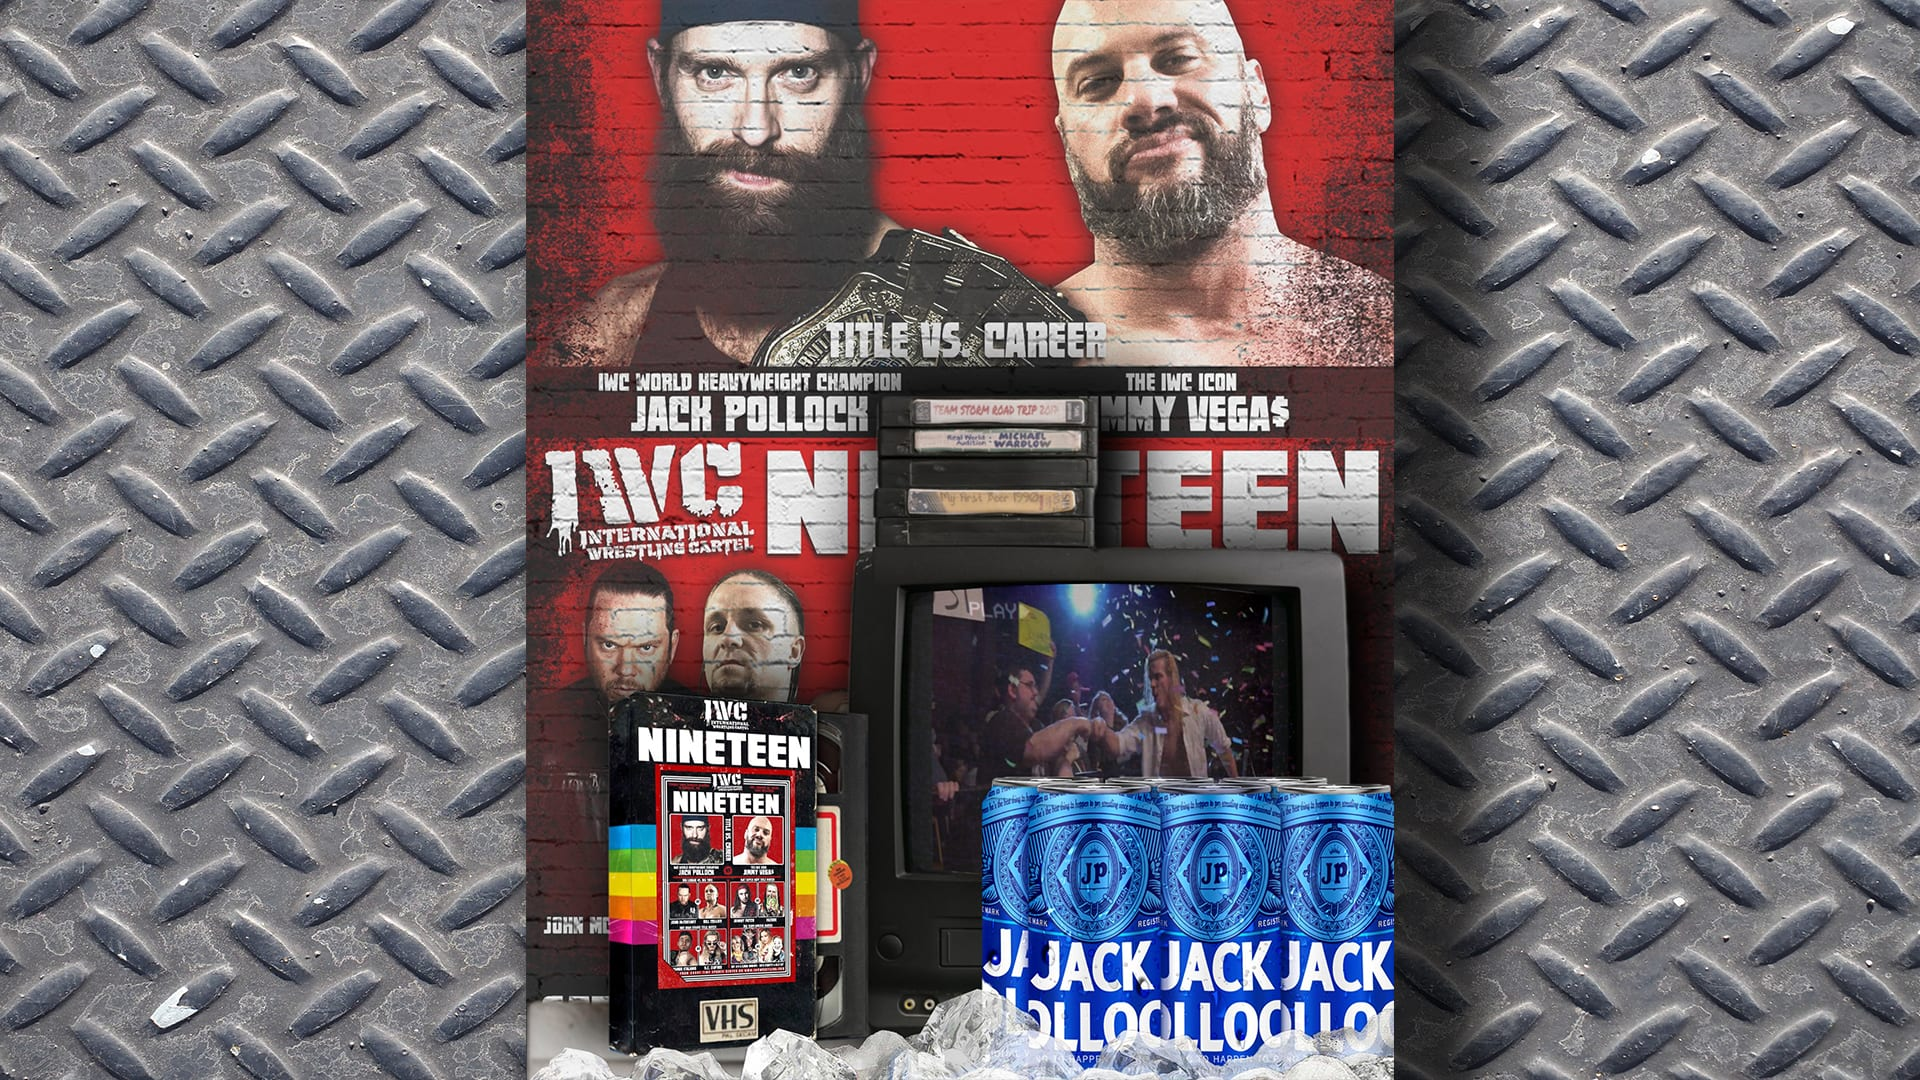 Six Pack with Jack: Nineteen